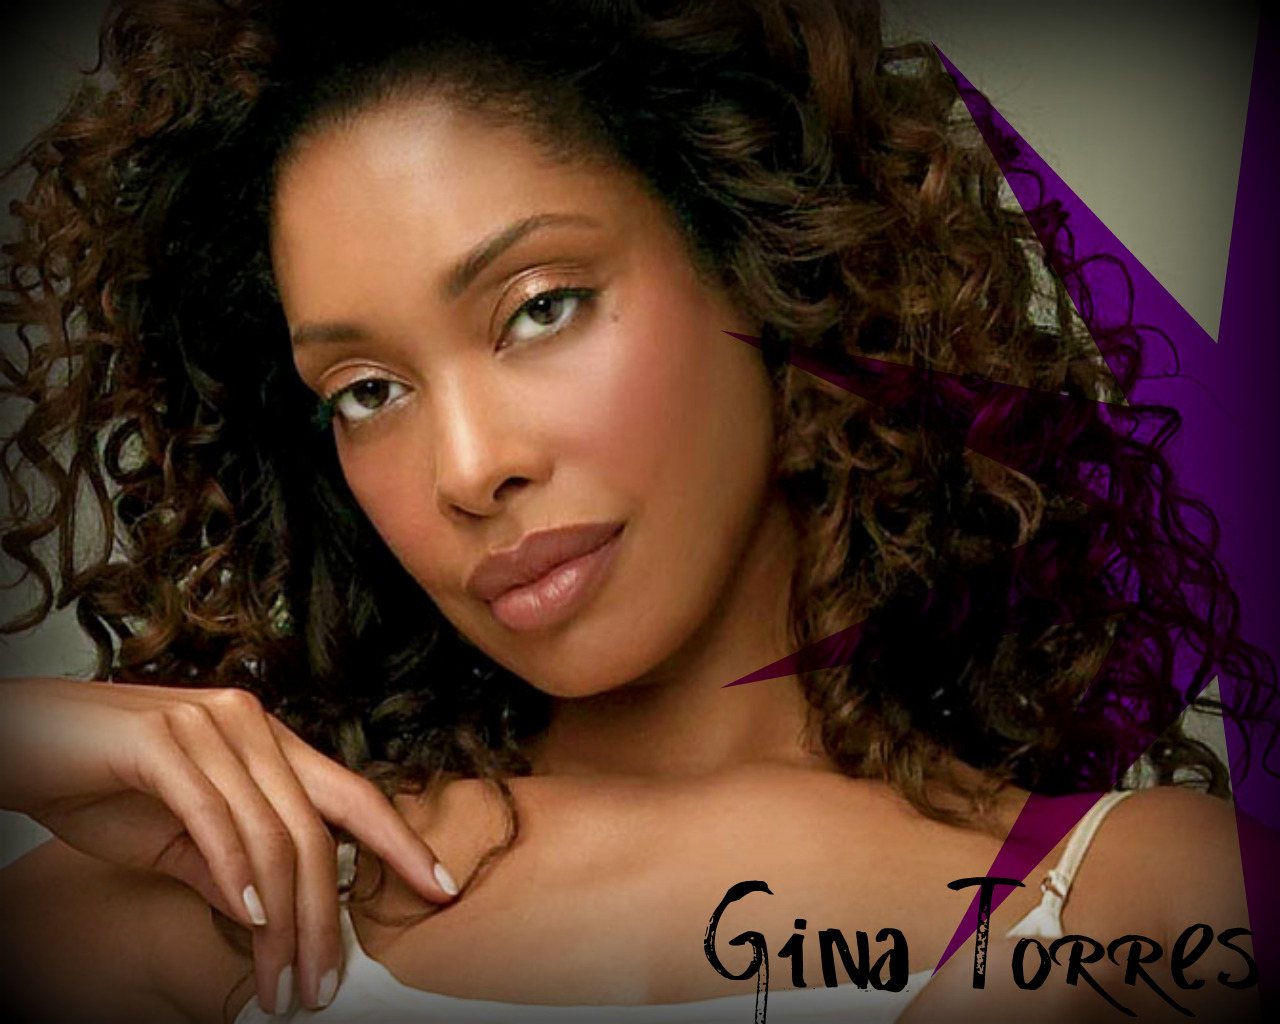 gina torres height